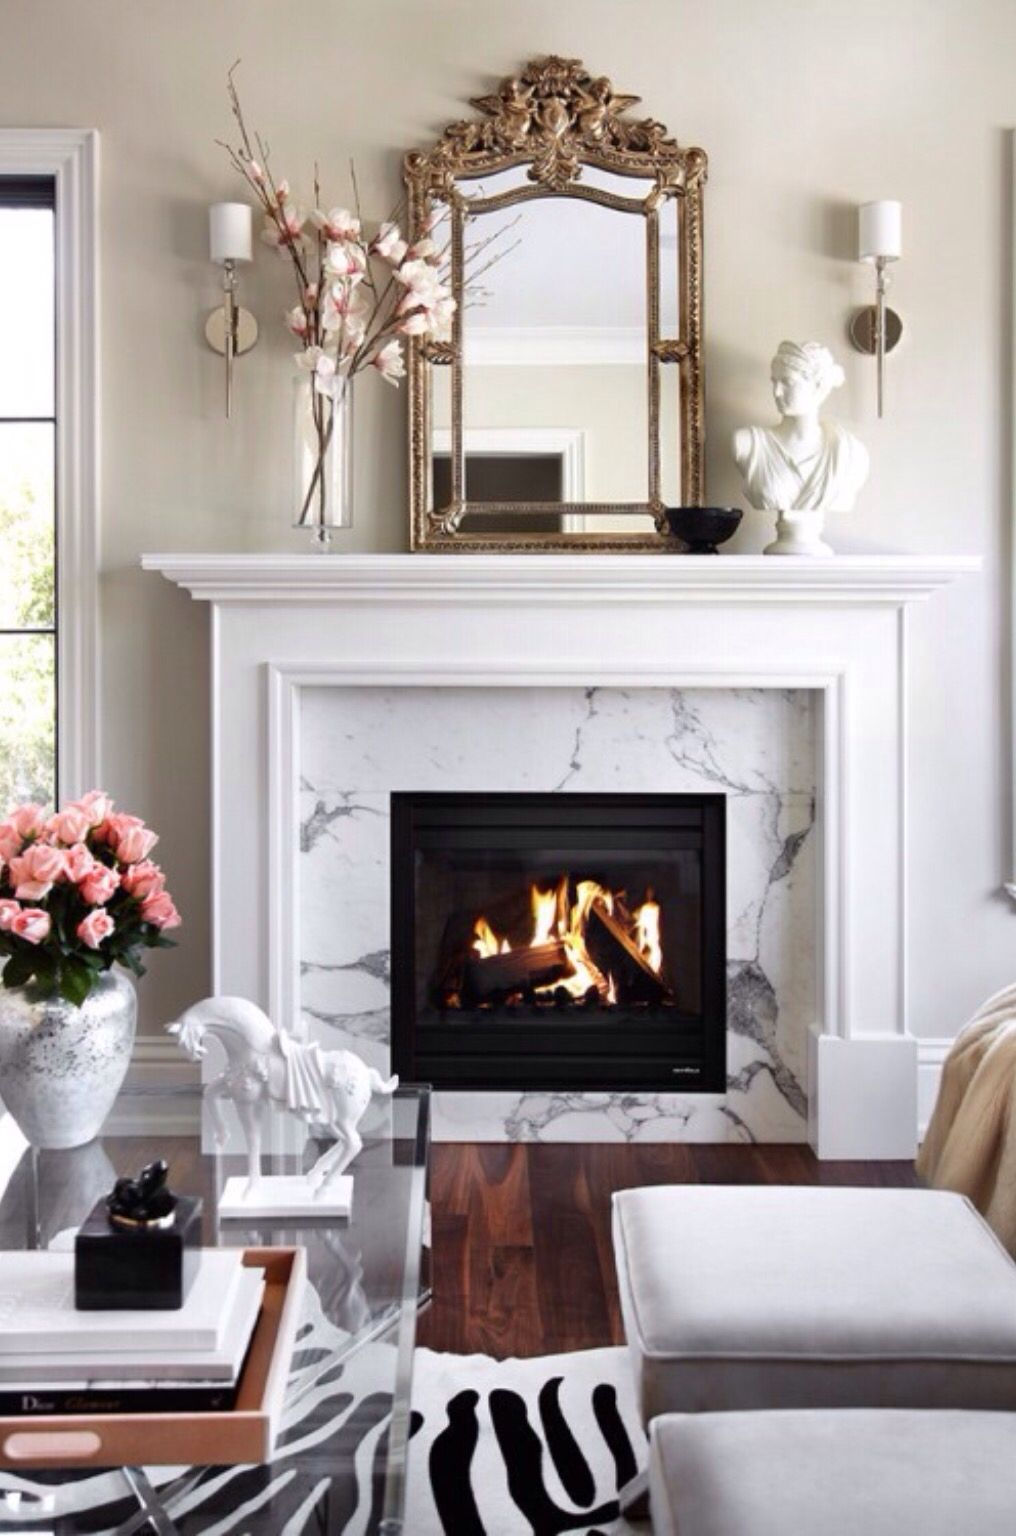 Marble Fireplaces Ideas 7 Living Room Design Ideas To Make Your Space Look Luxe In 2019